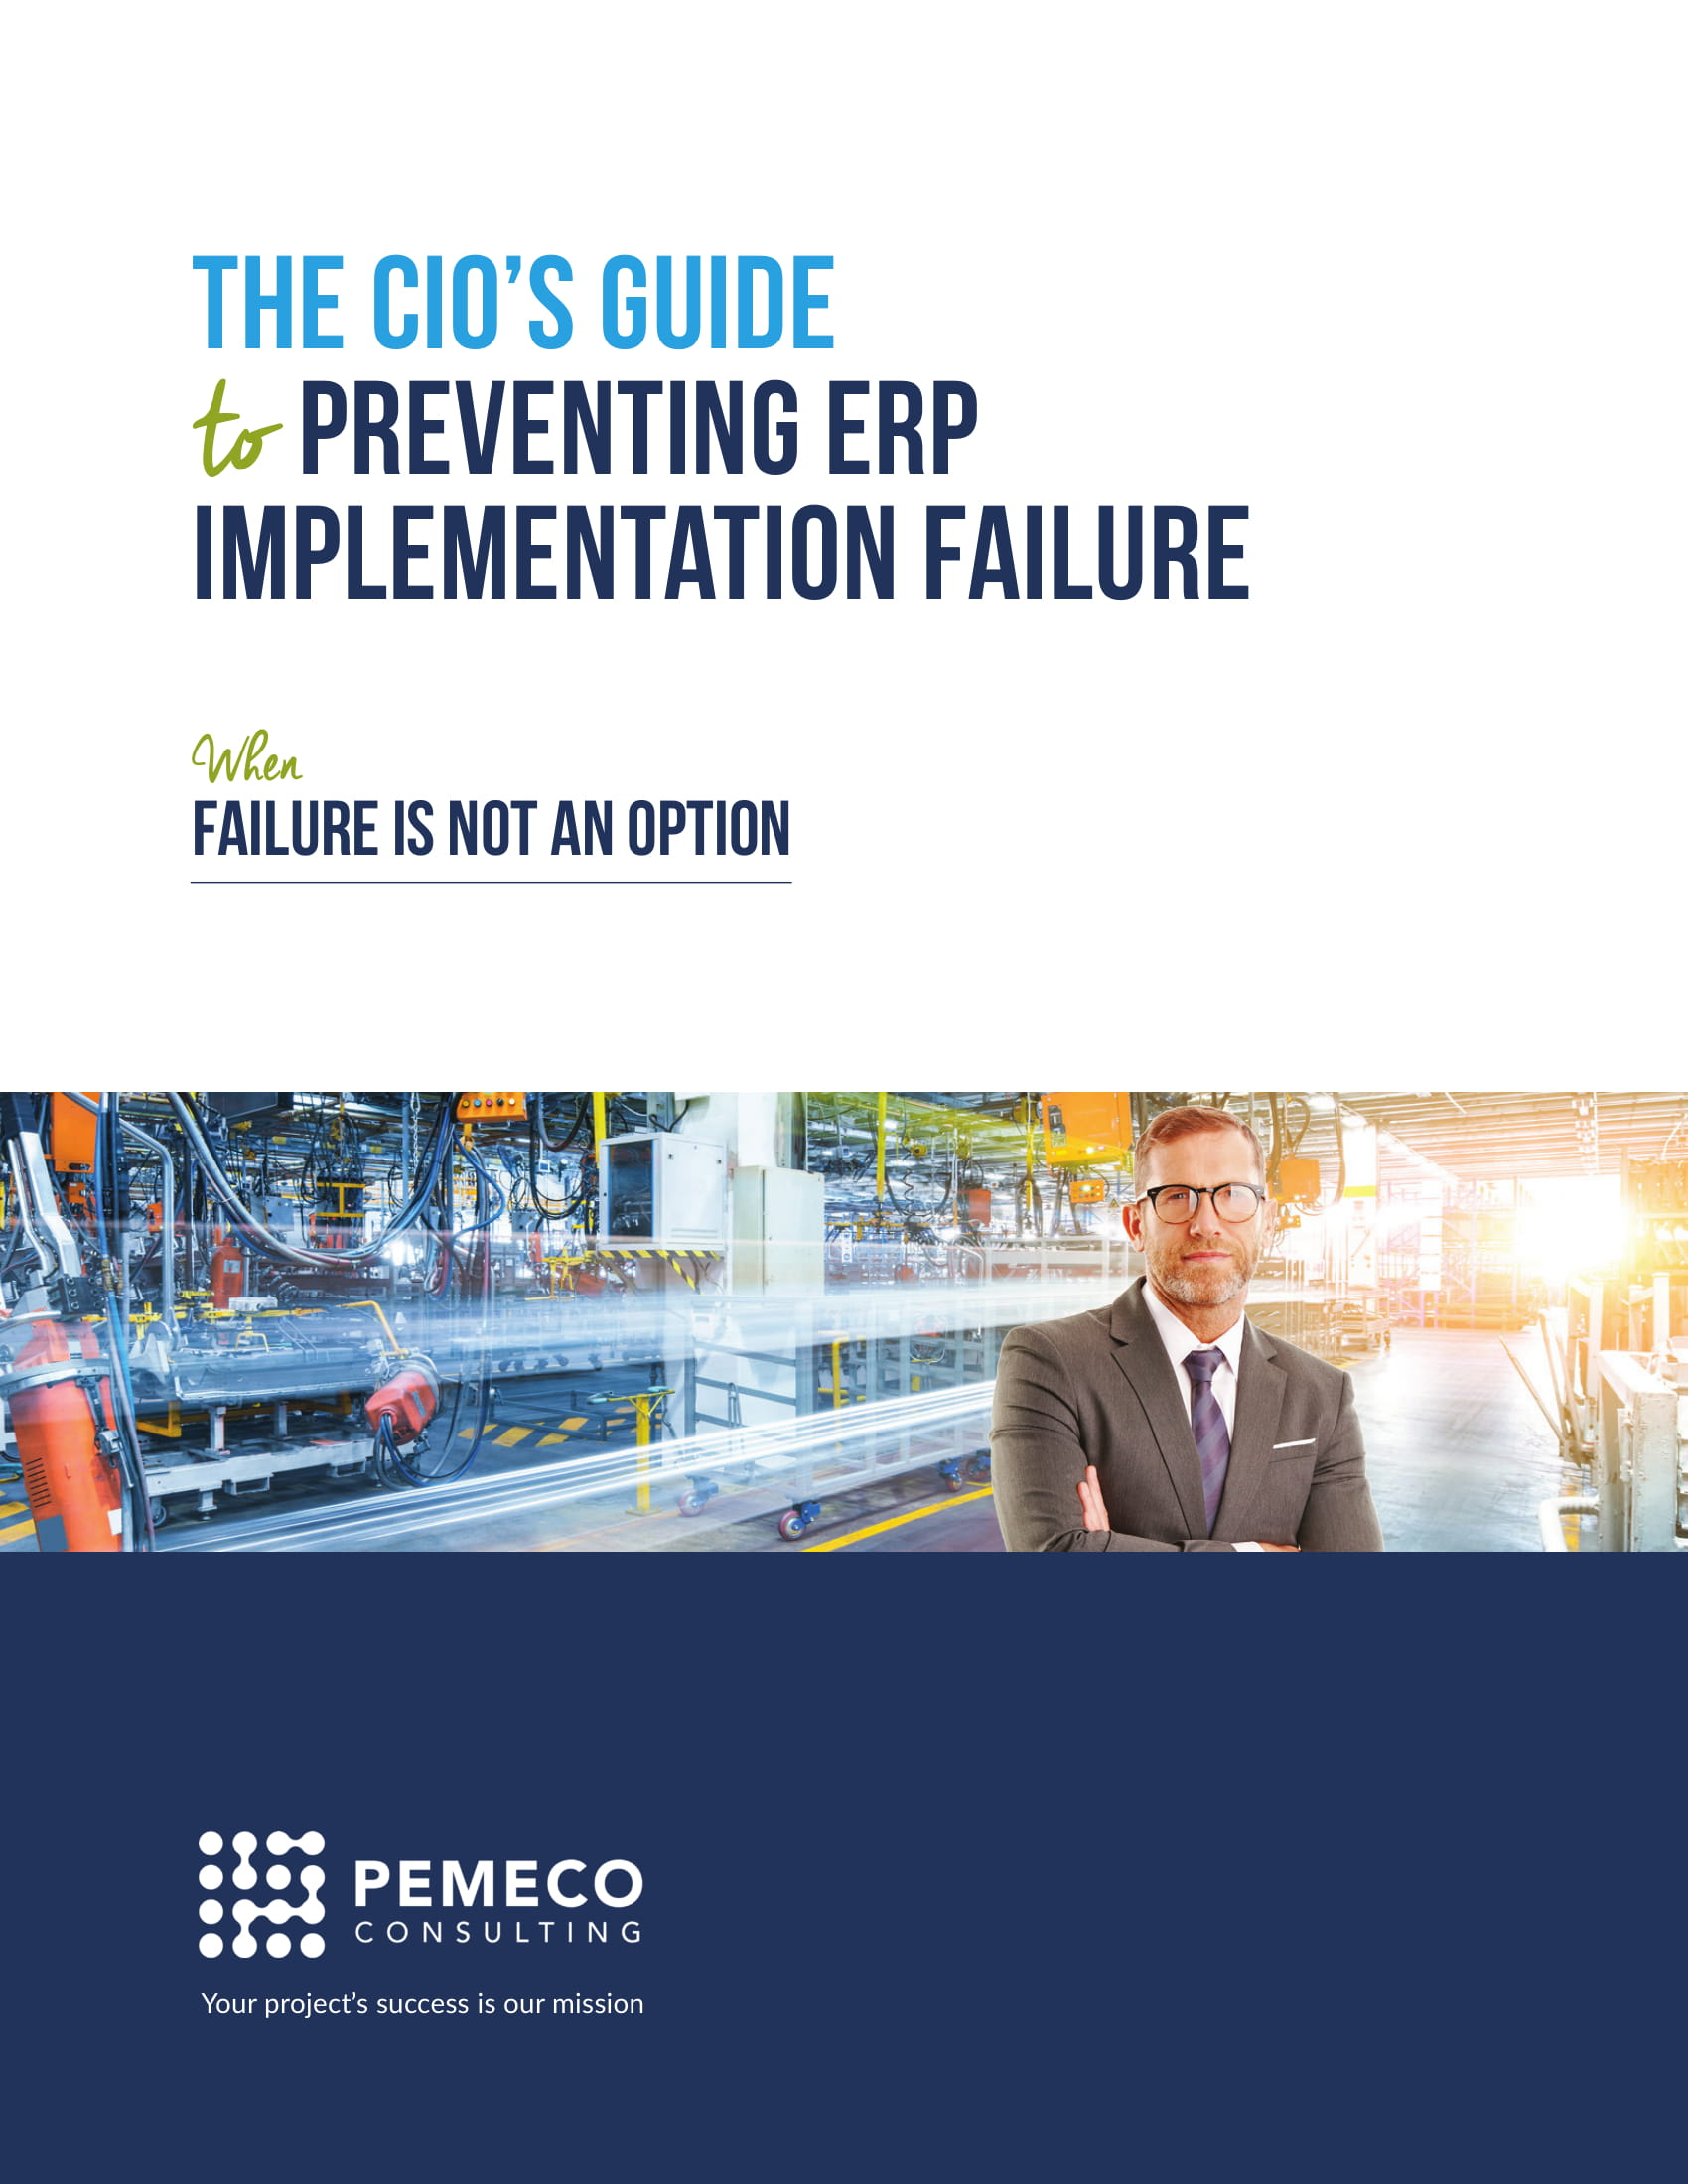 The CIO's Guide to prevent ERP implementation Failure